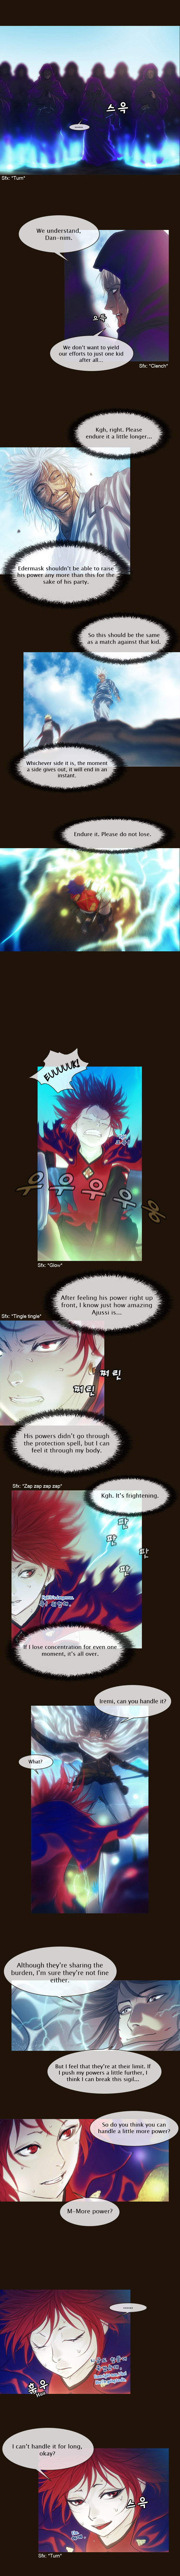 Magician 135 Page 2